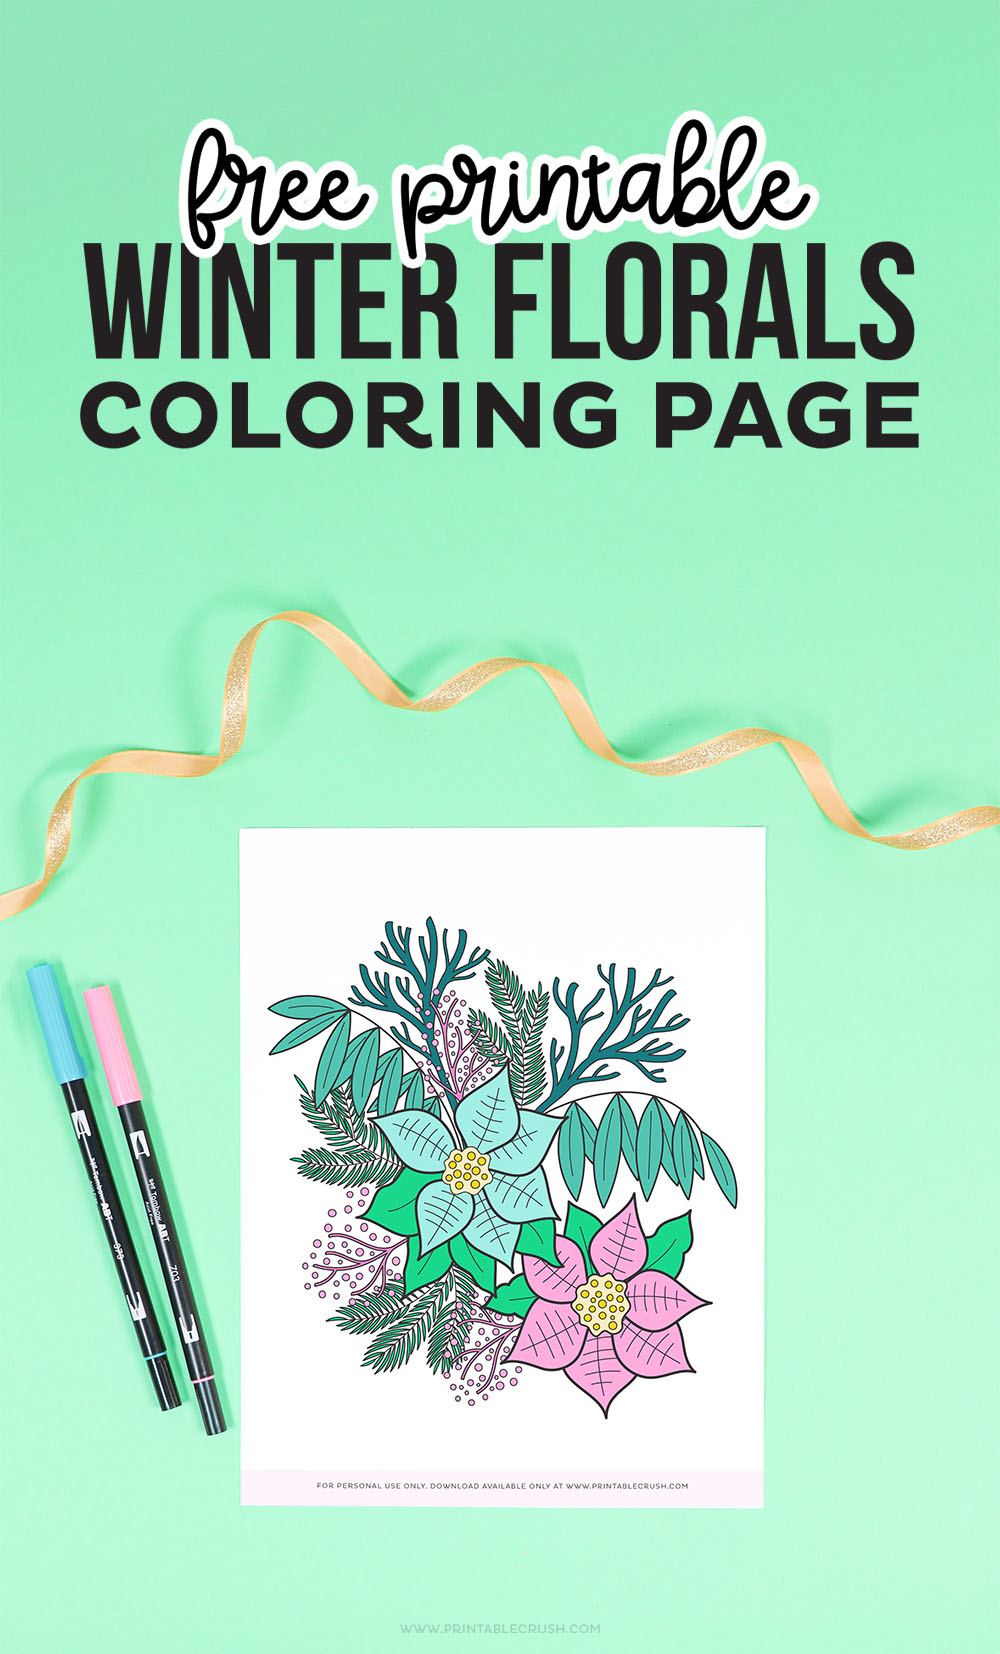 Free Winter Florals Coloring Sheet- Winter Florals Coloring Page - Free Winter Coloring Page - Printable Crush